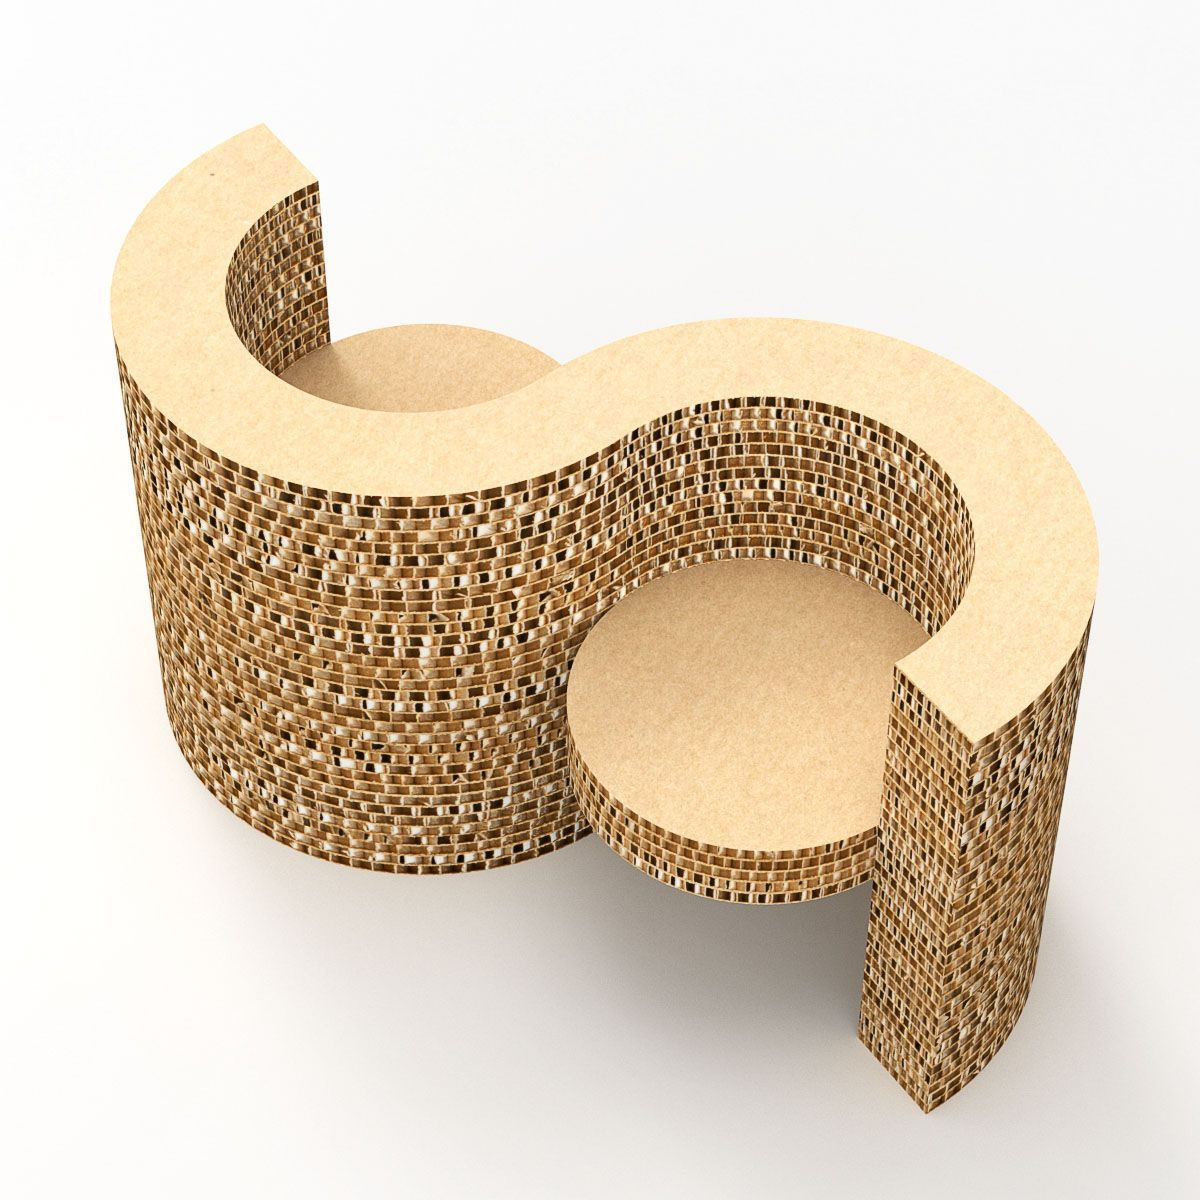 Cardboard Chair Element With Two Seats With Armrests Made Of Cardboard